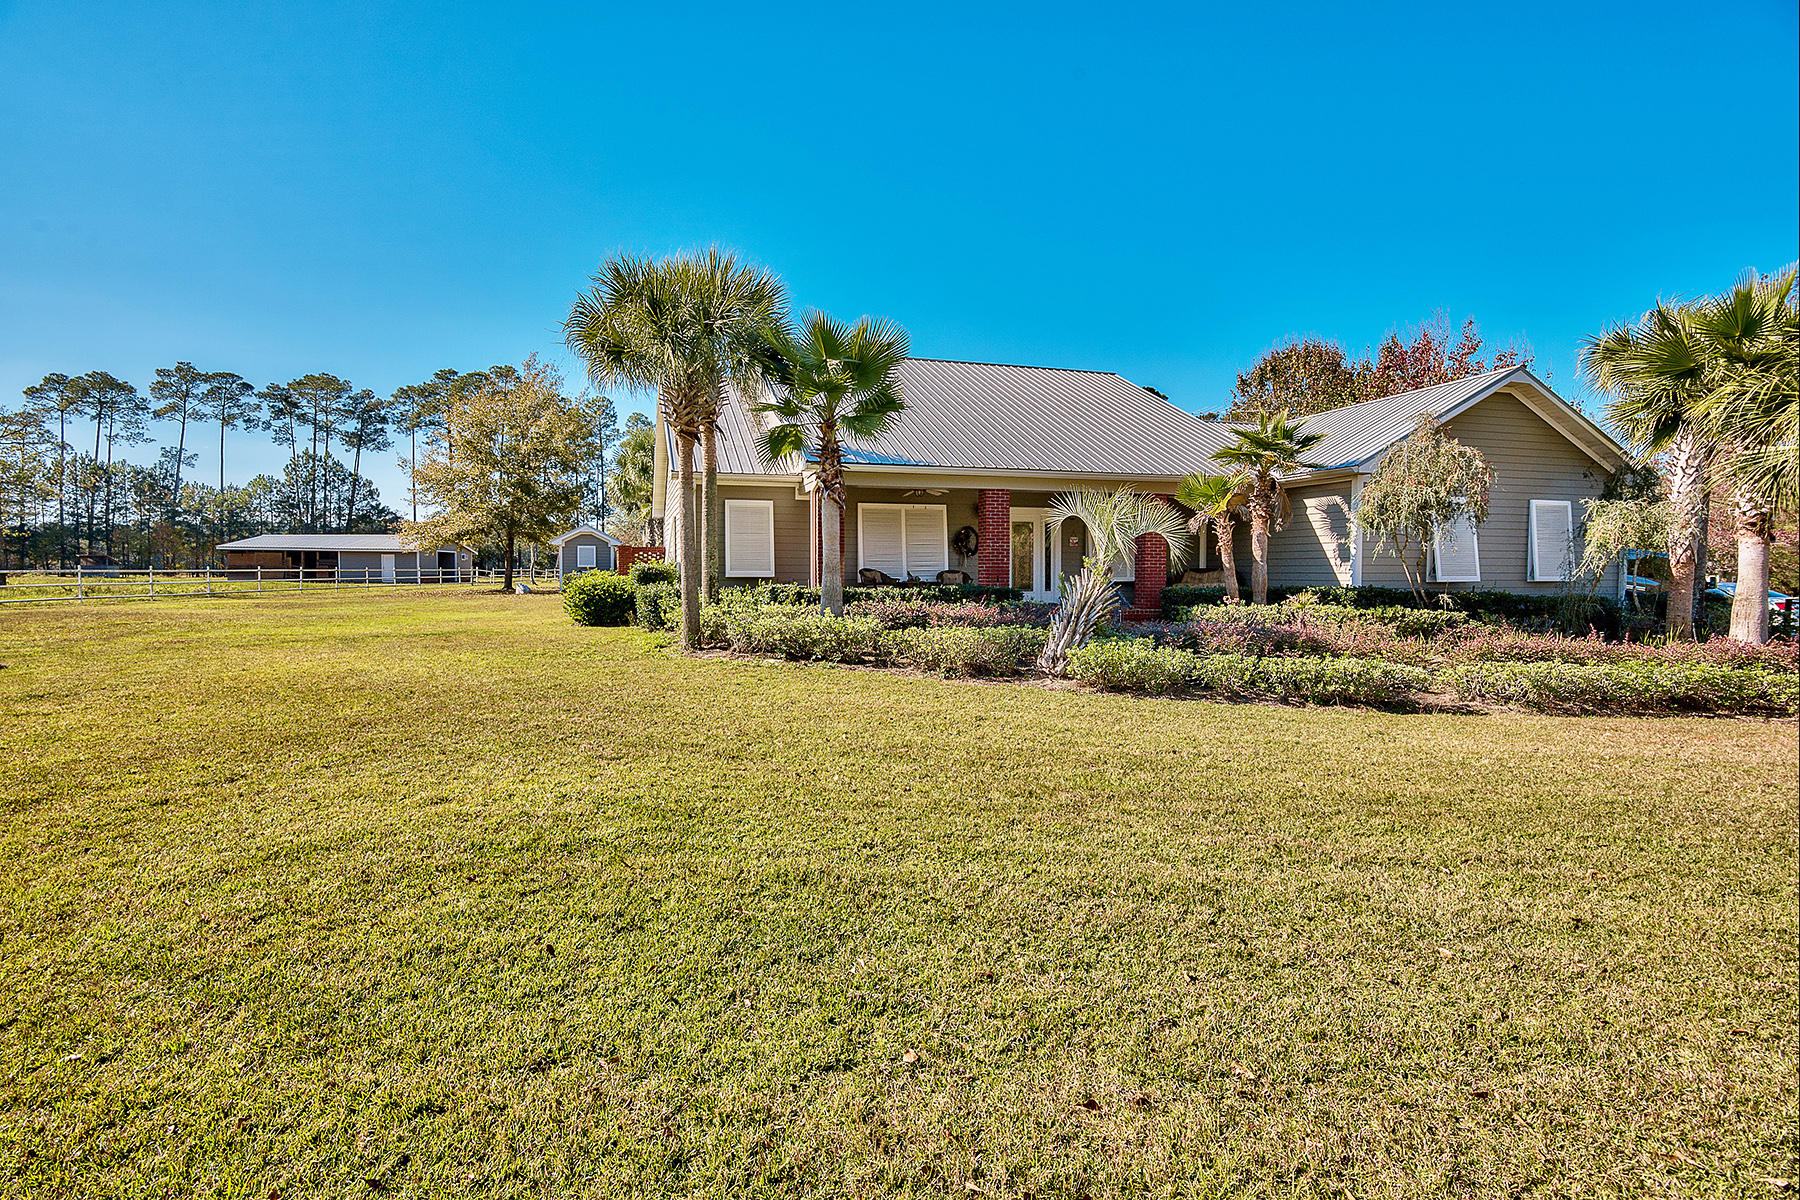 Single Family Home for Sale at EQUESTRIAN ESTATE WITH WATERFRONT ACCESS 356 Whitfield Road Freeport, Florida, 32439 United States